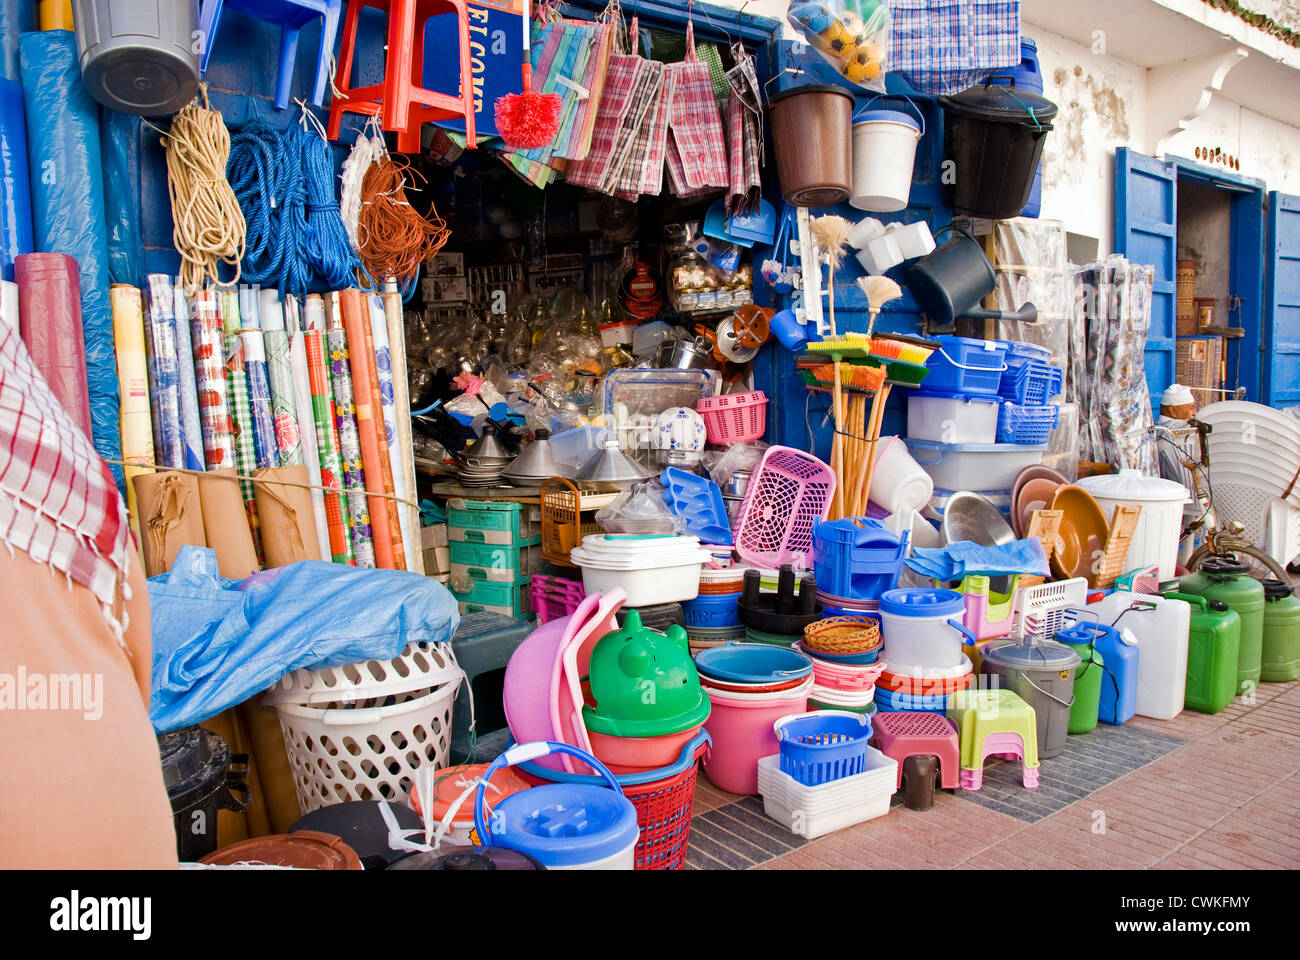 hardware shop selling cheap plastic household items